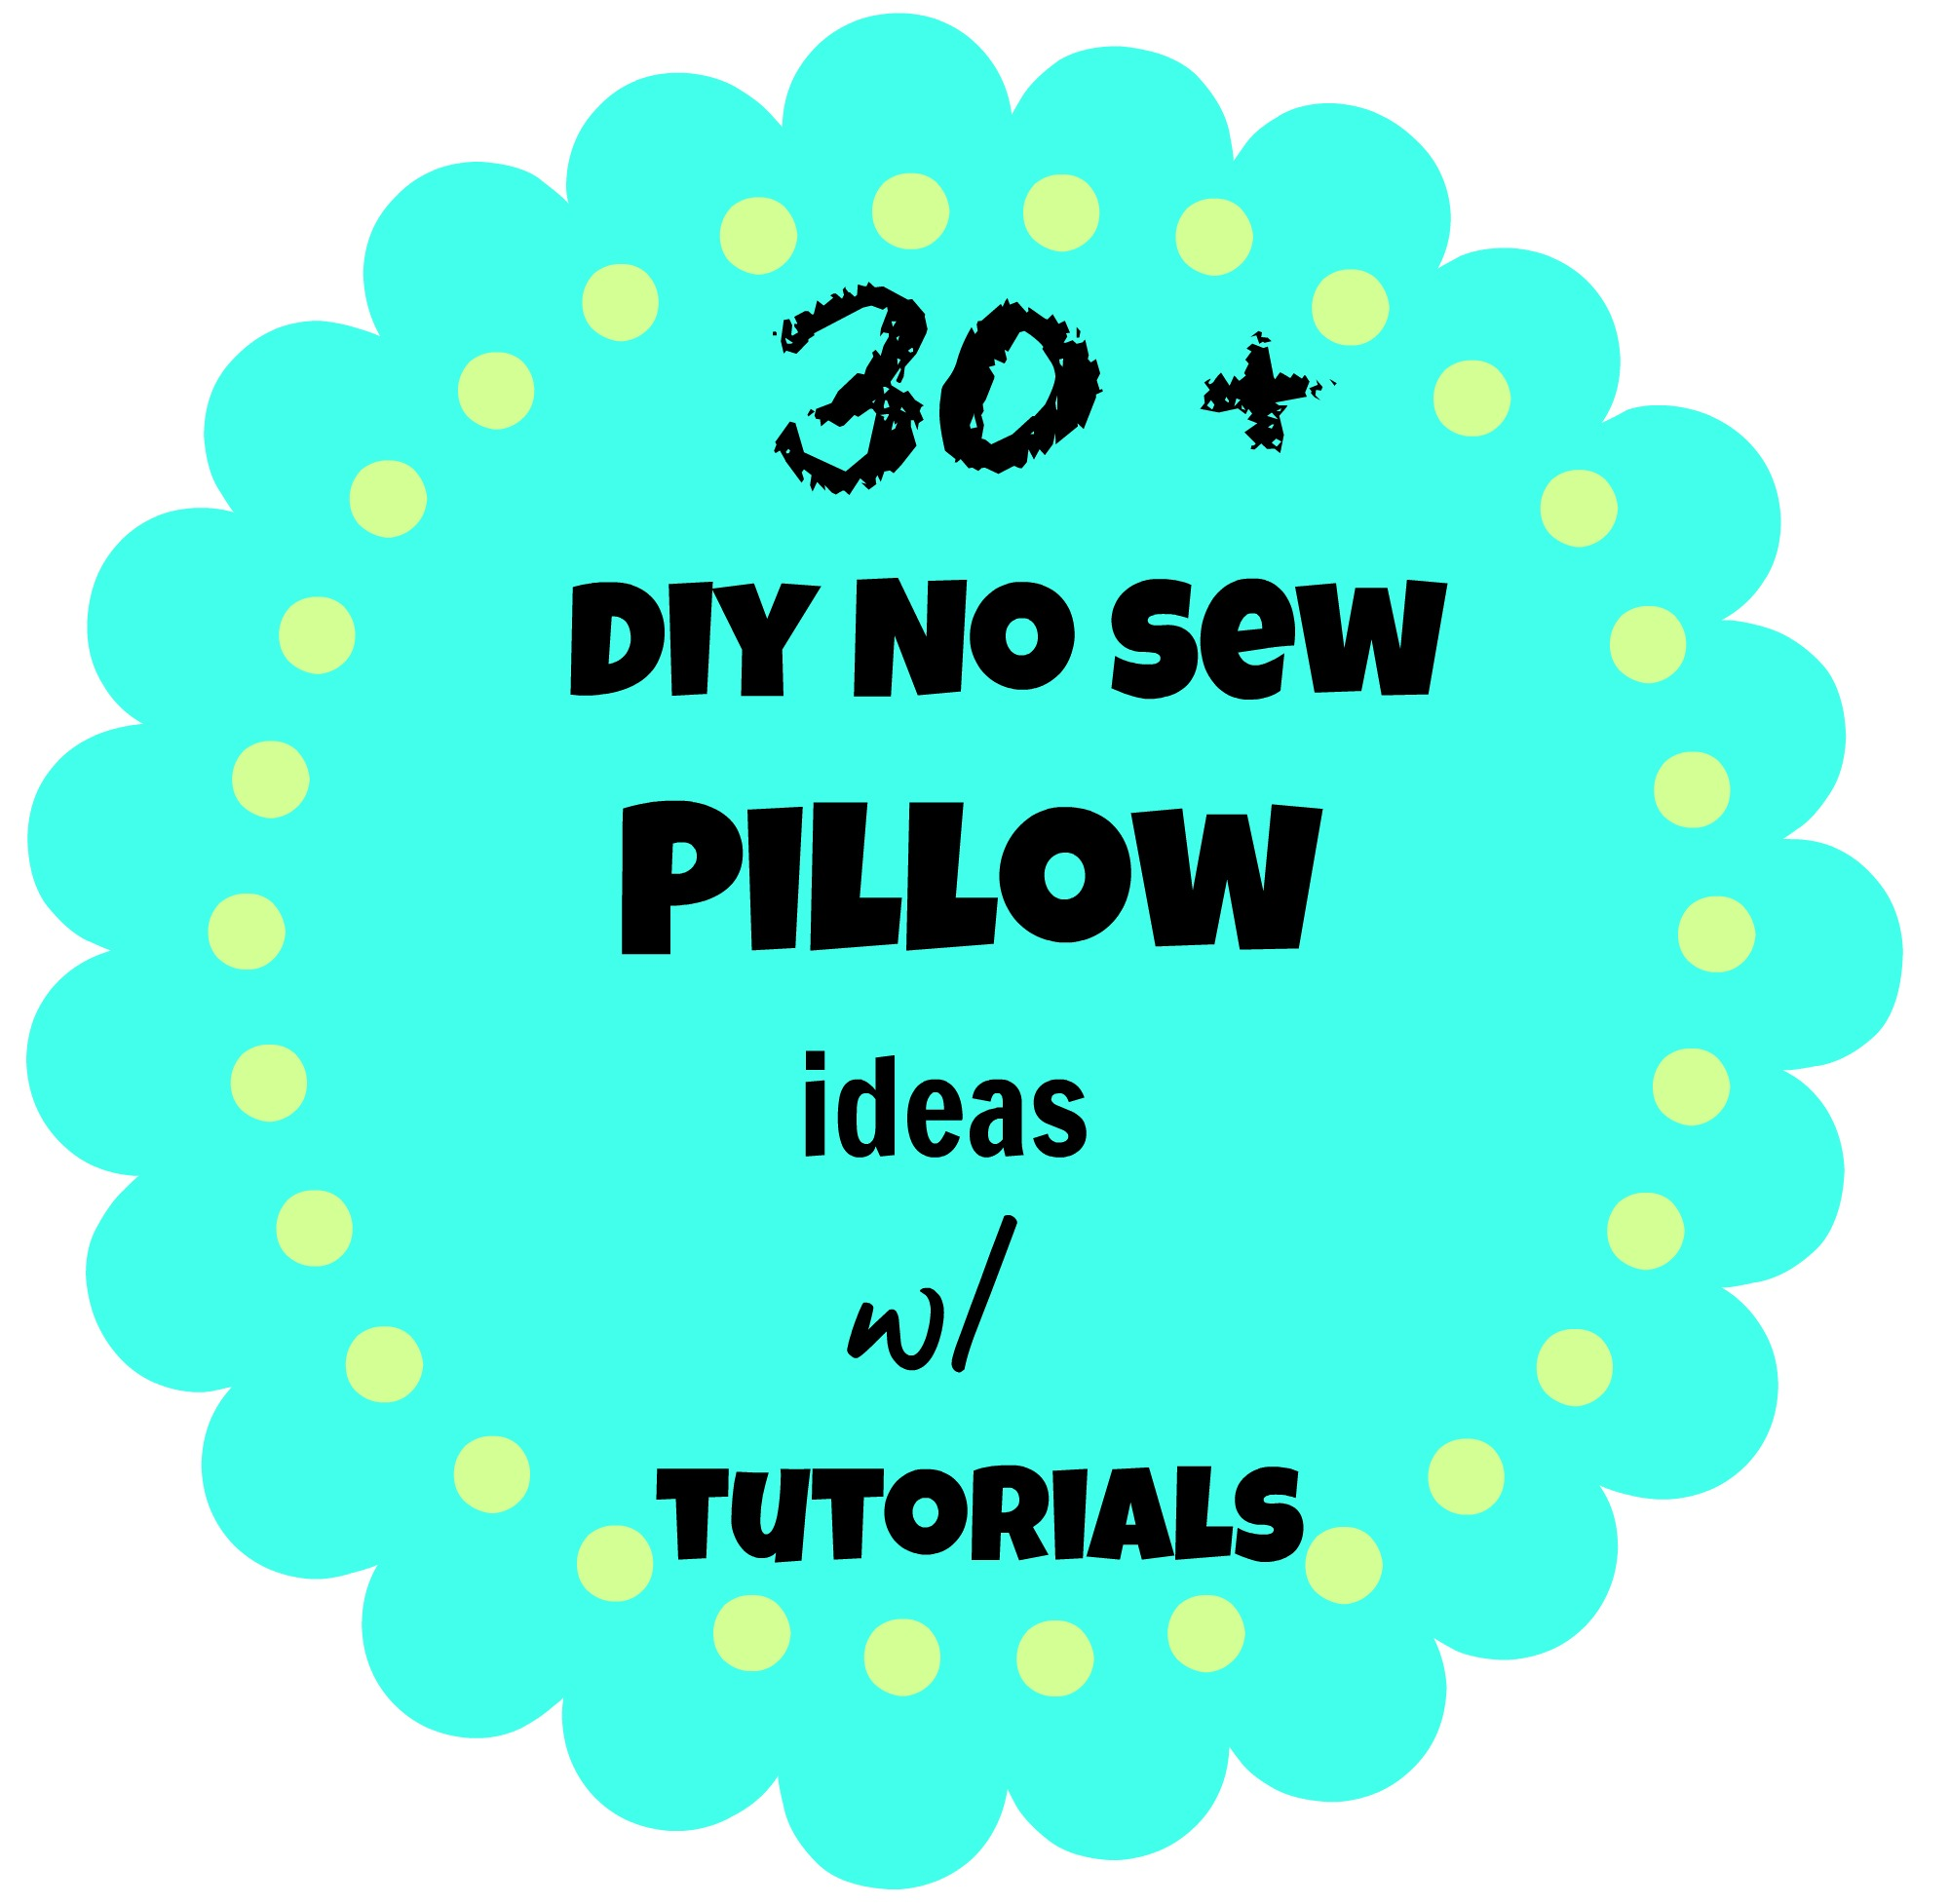 diy no sew pillow ideas